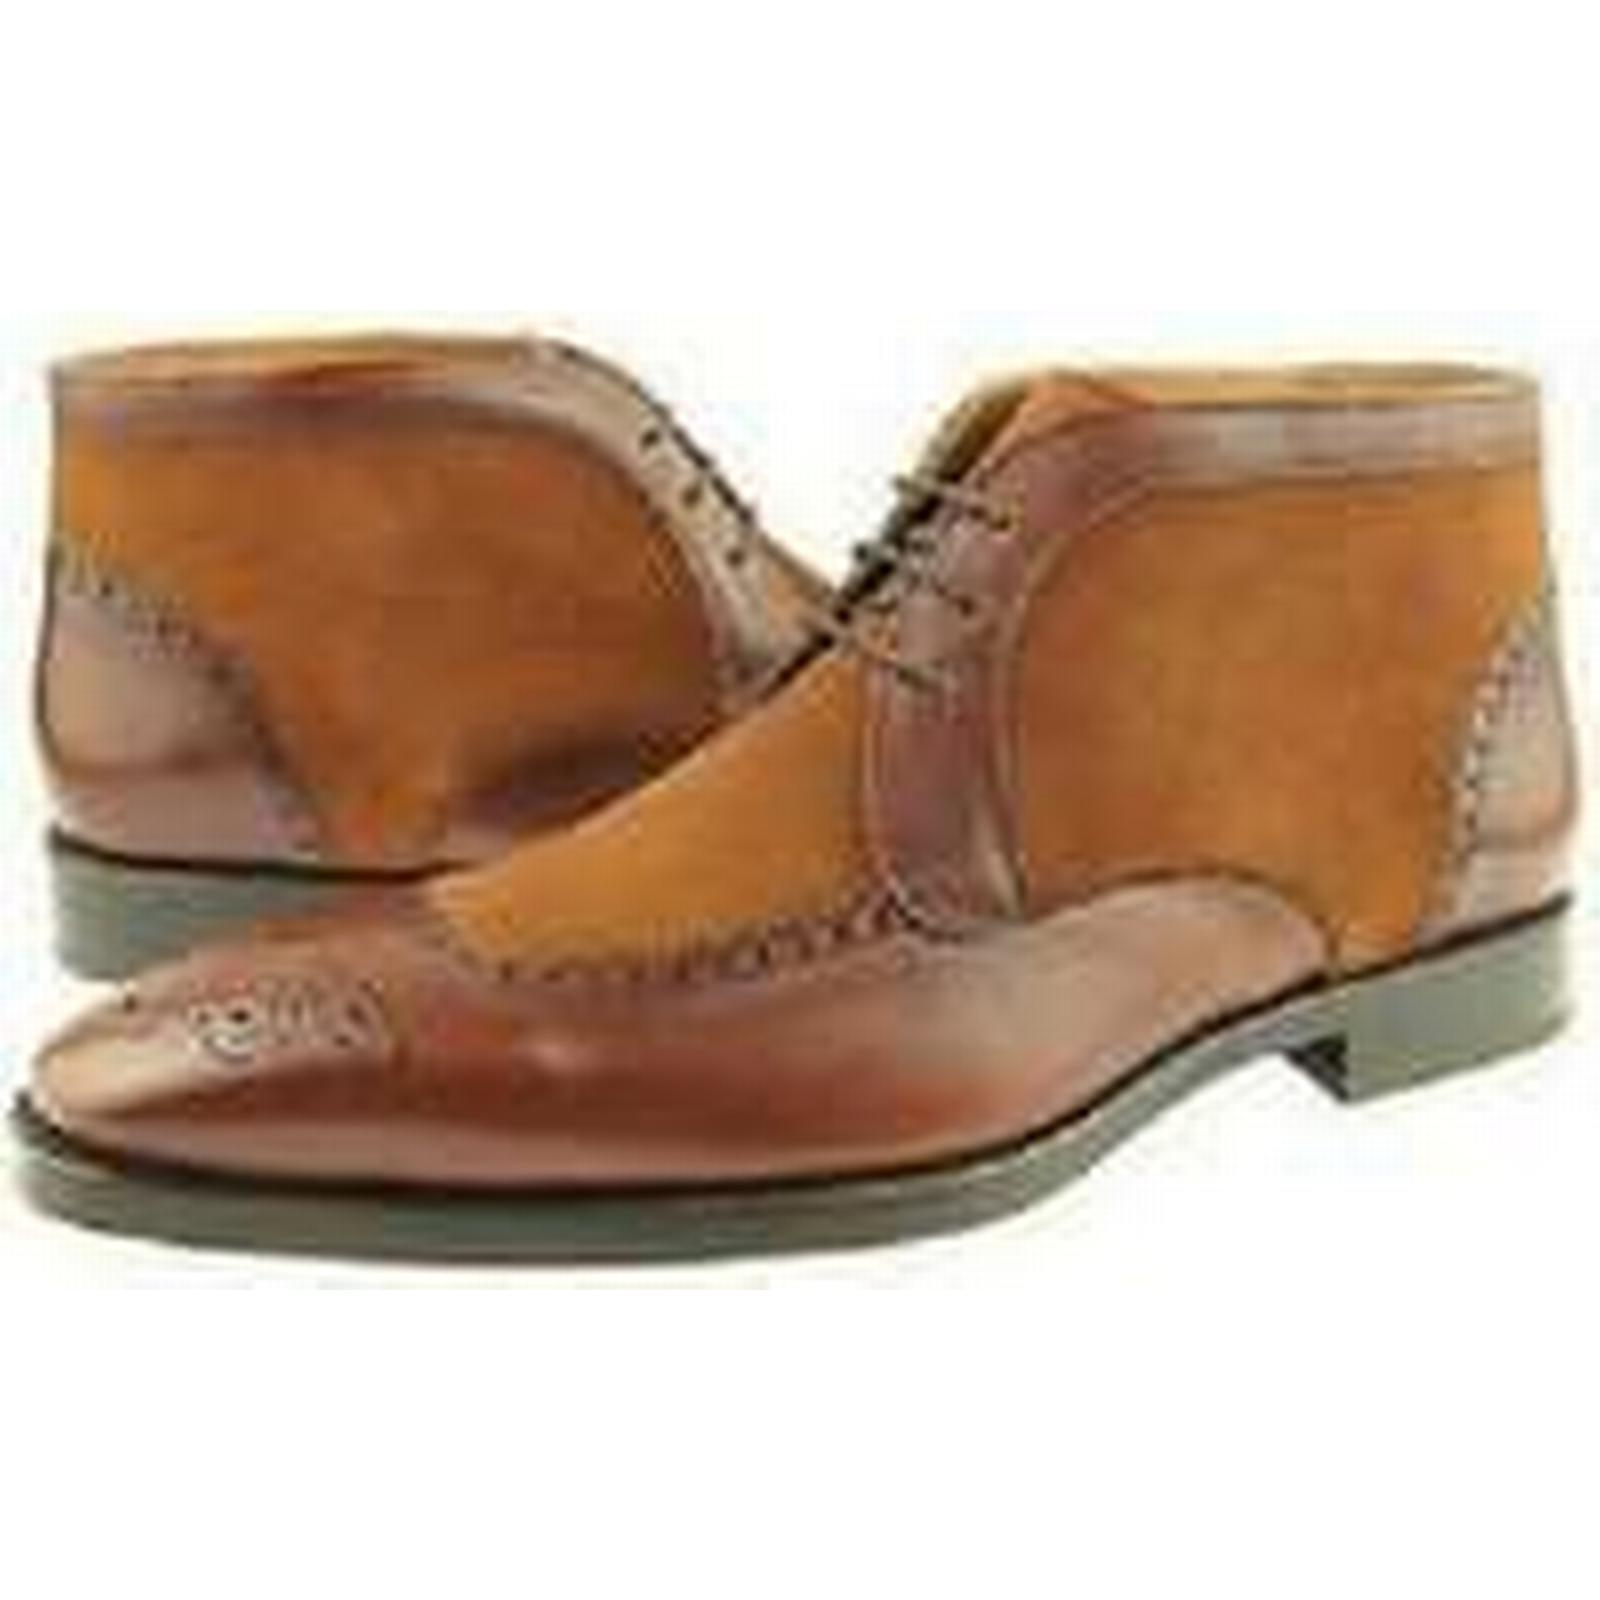 Bonanza (Global) boots, Handmade Men brown chukka boots, (Global) Men suede and leather ankle boots, Men boots ccde0a